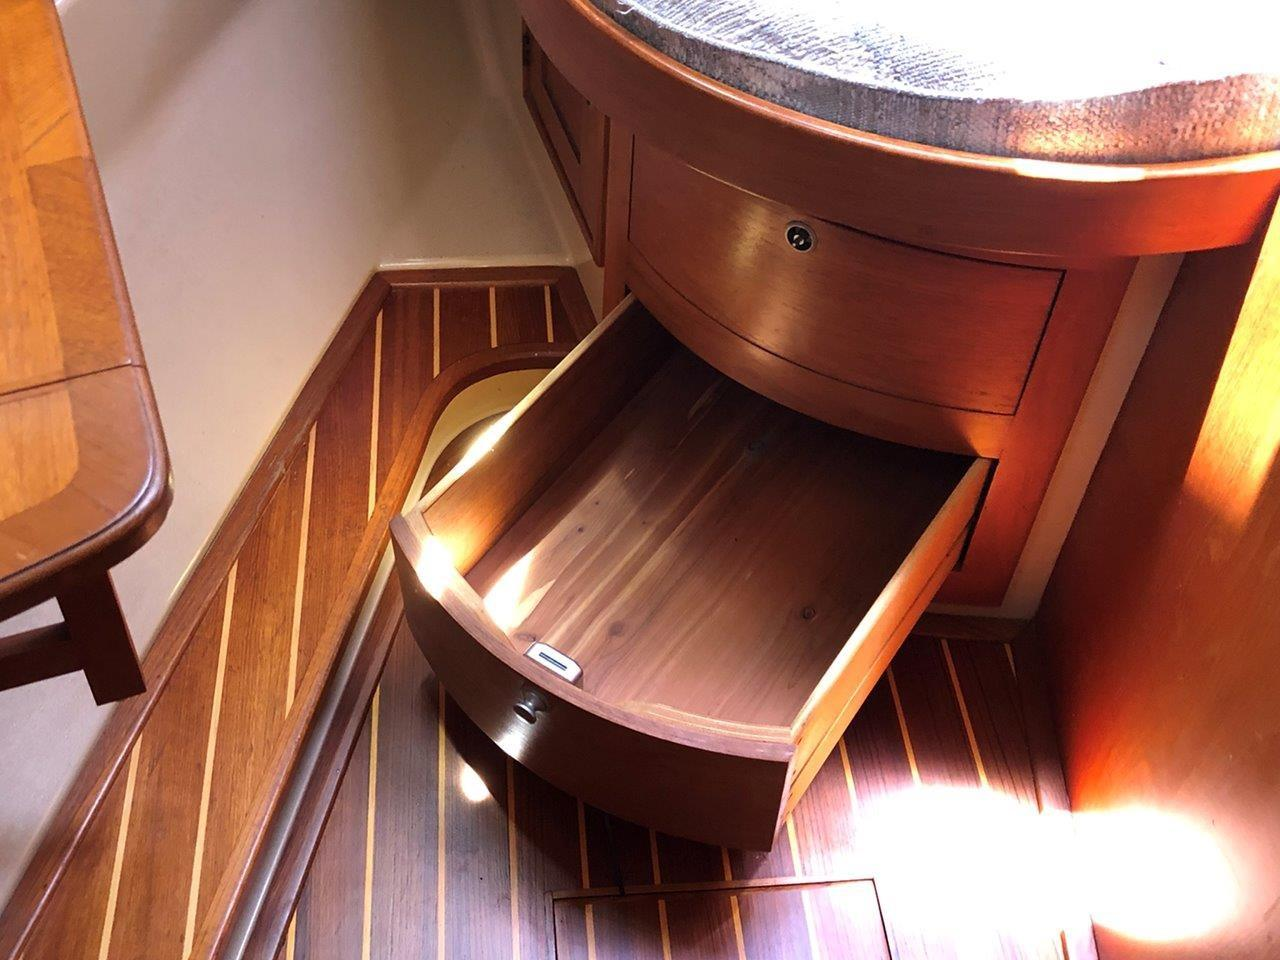 Forward stateroom drawers